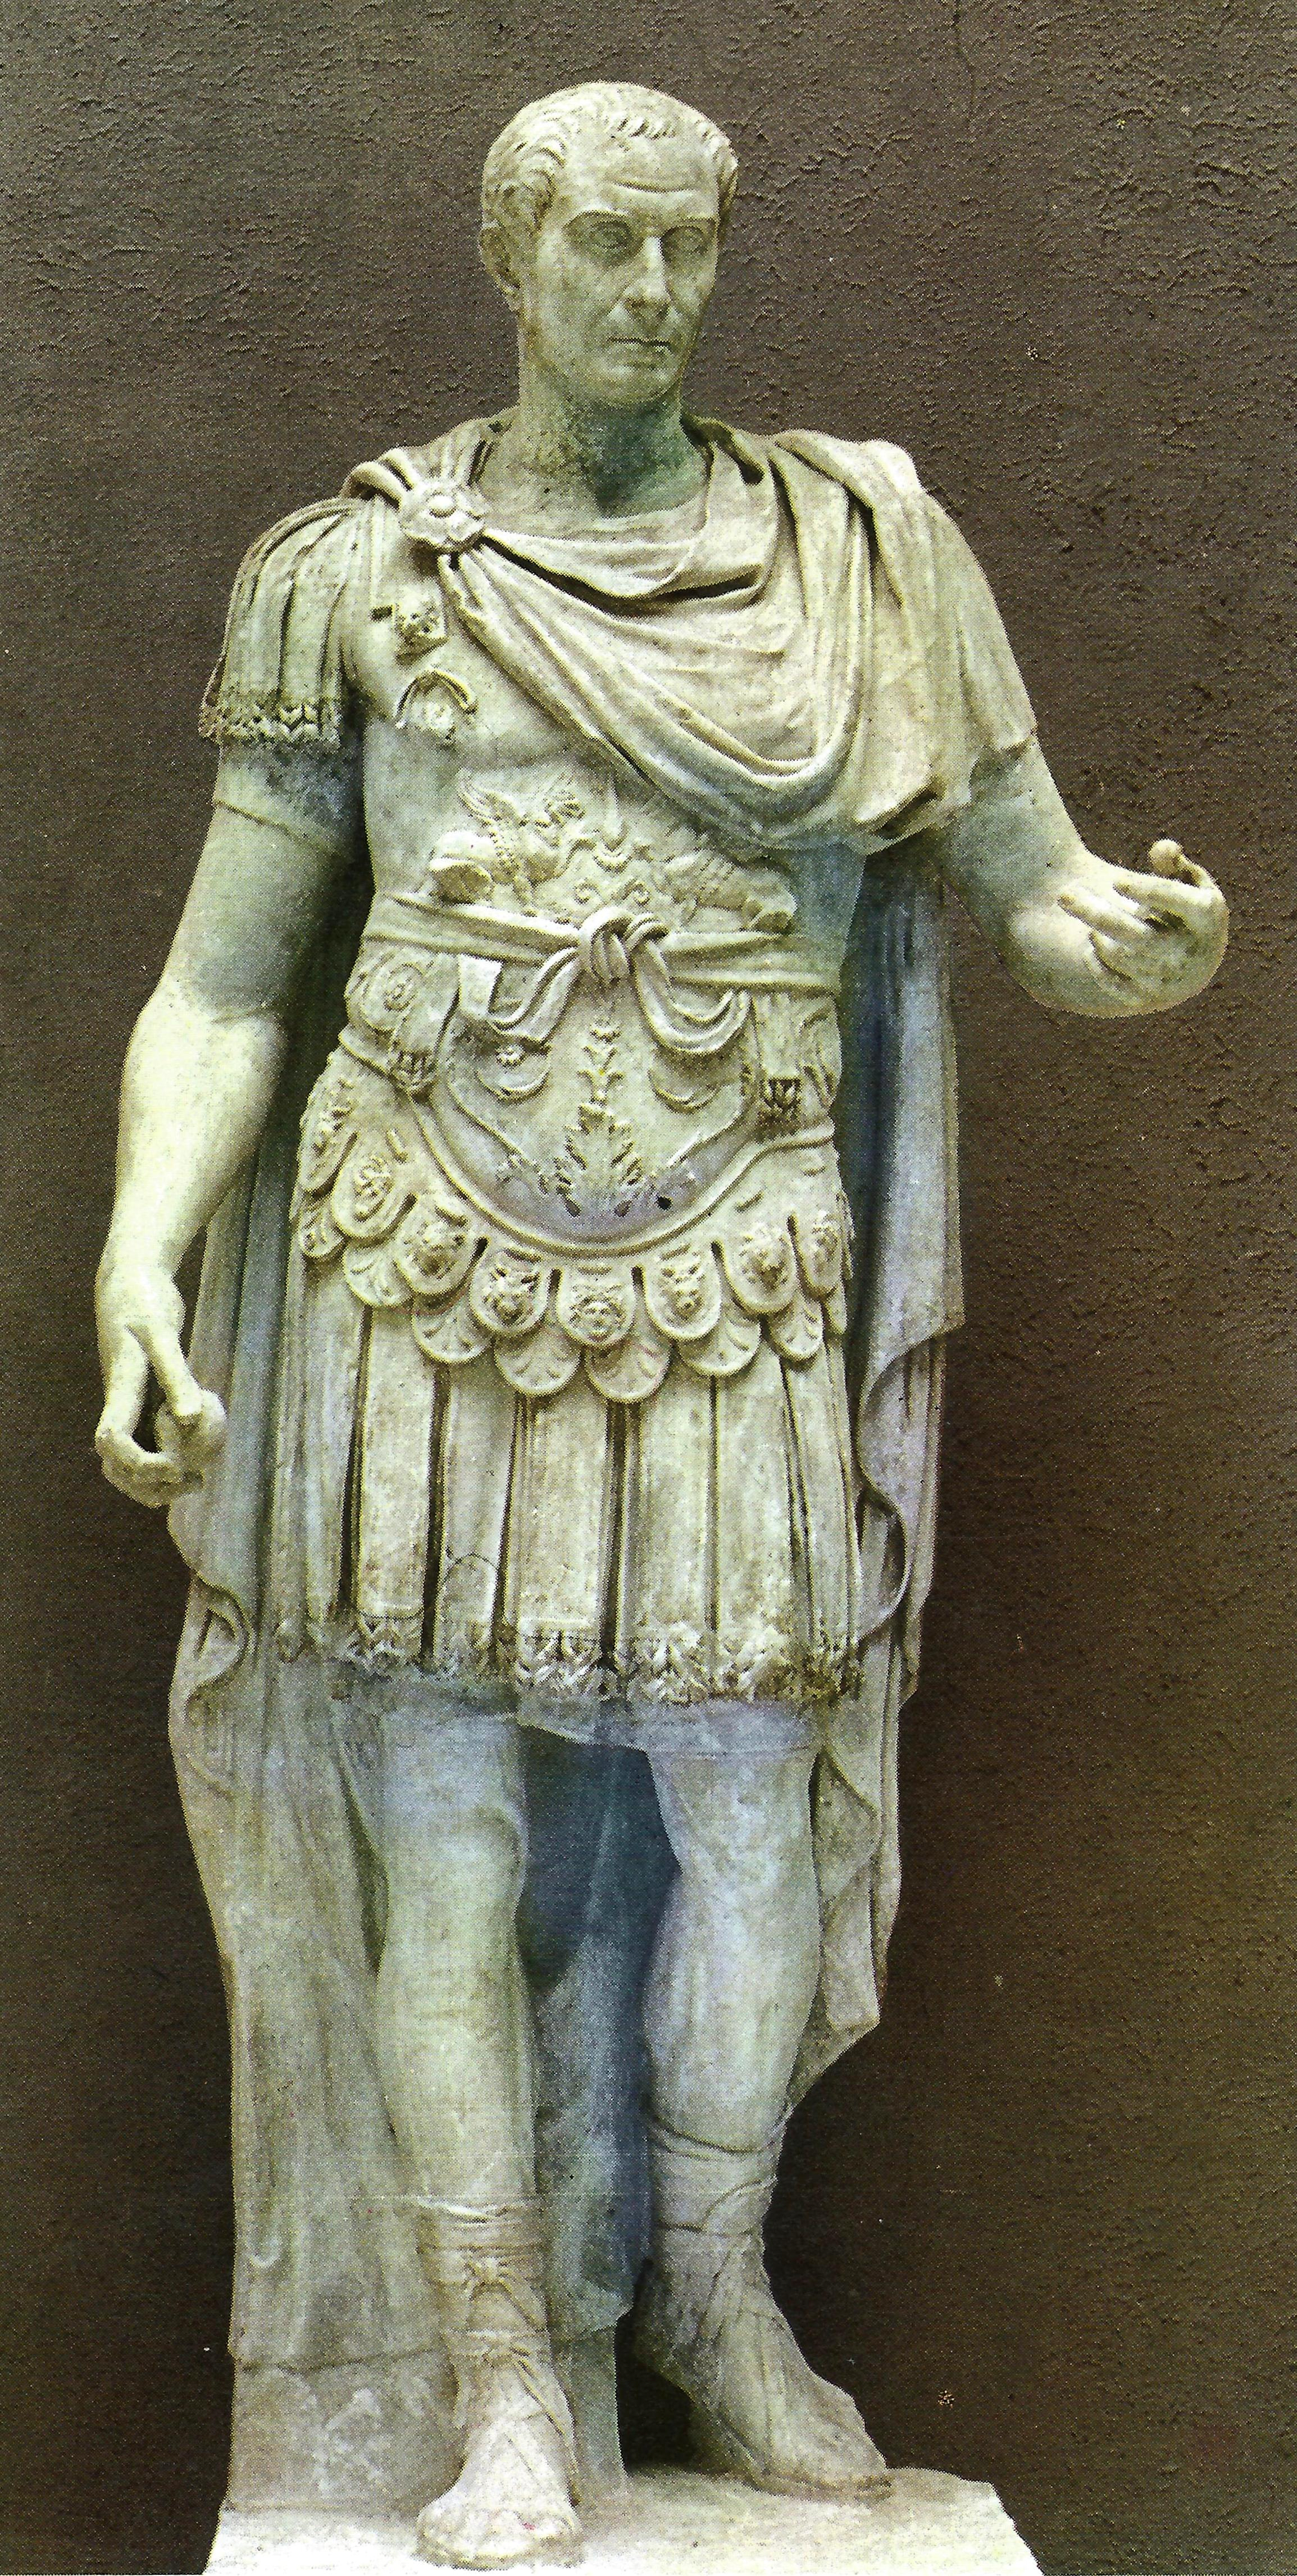 caesar augustus gifted statesman or ruthless It was octavius who became rome's first emperor under the name of augustus caesar was a gifted julius ceasar essay - the role of and statesman.